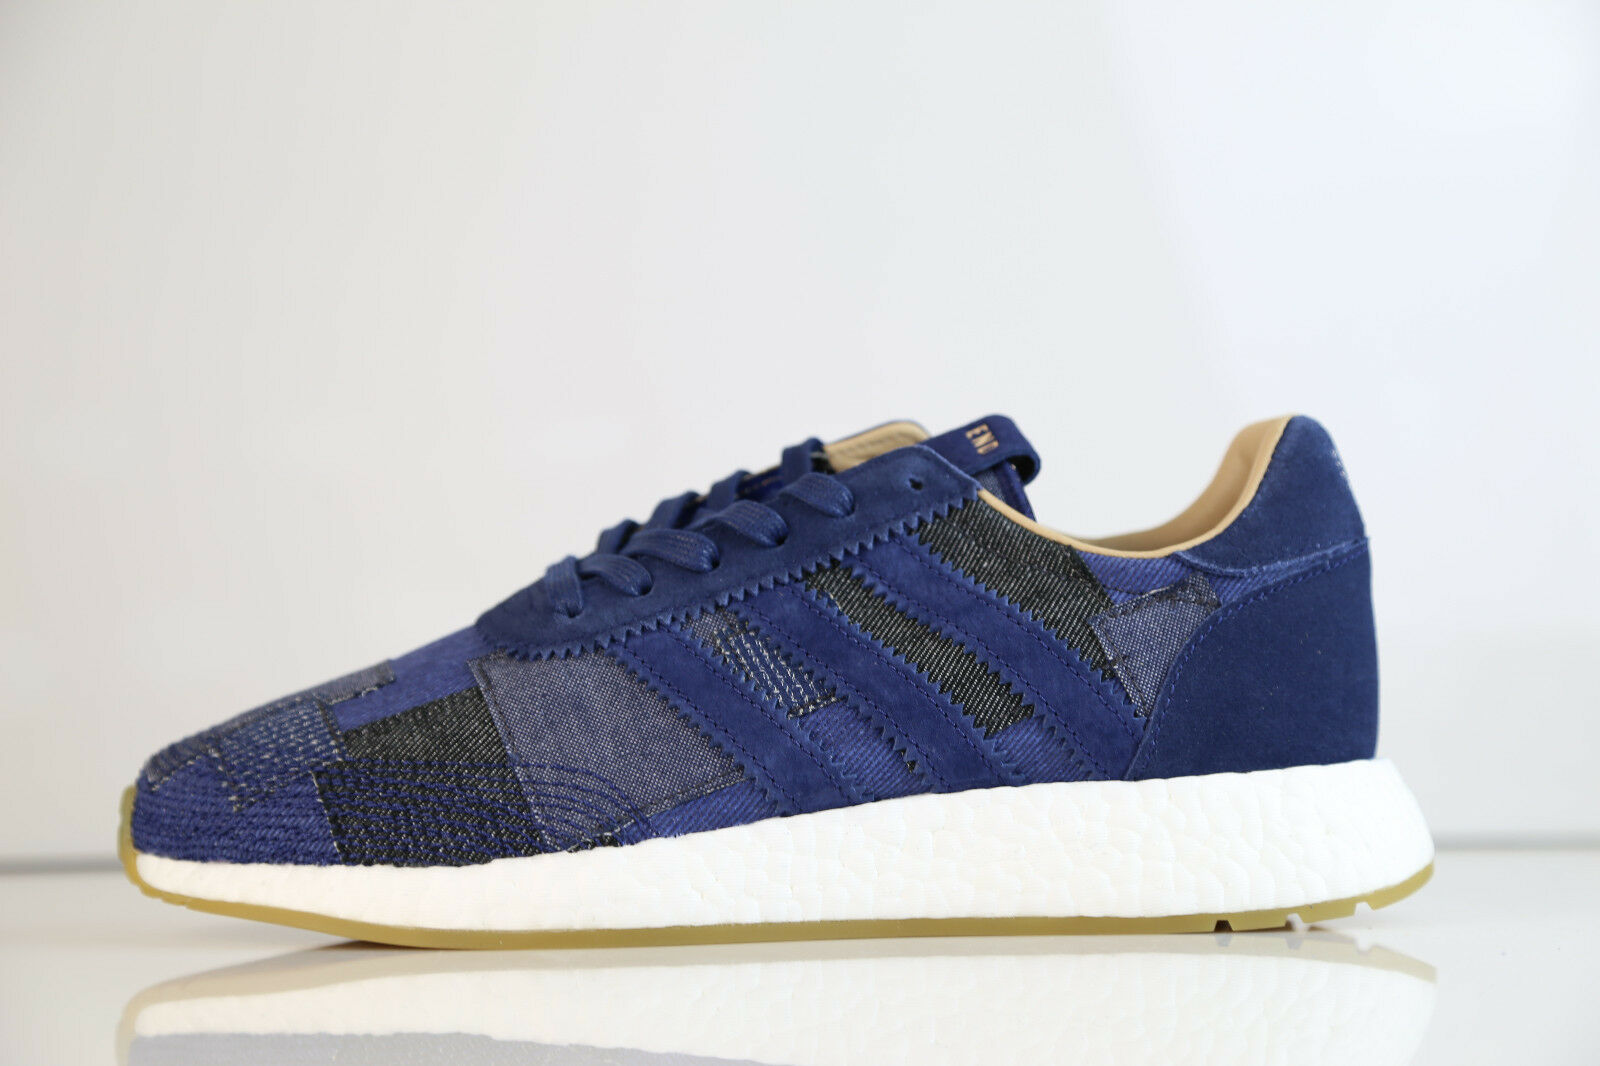 Adidas Consortium Bodega End Iniki Runner SE Patchwork Denim BY2104 5.5-15 boost